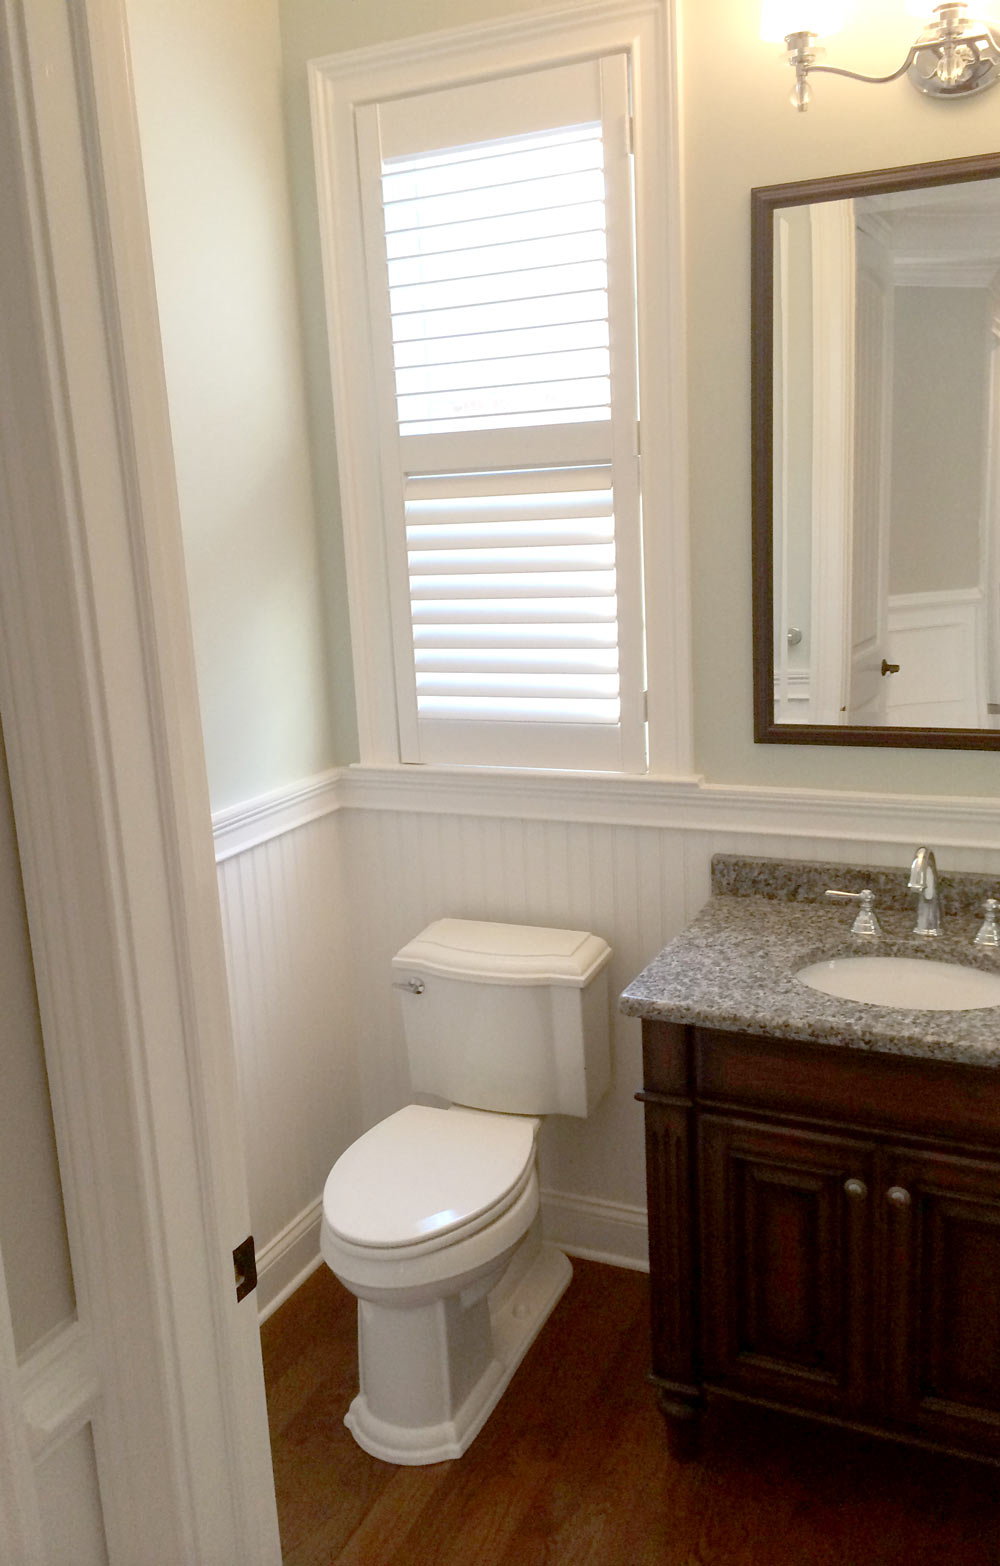 Bathroom remodeling contractor in medford nj aj wehner for Small 3 piece bathroom ideas